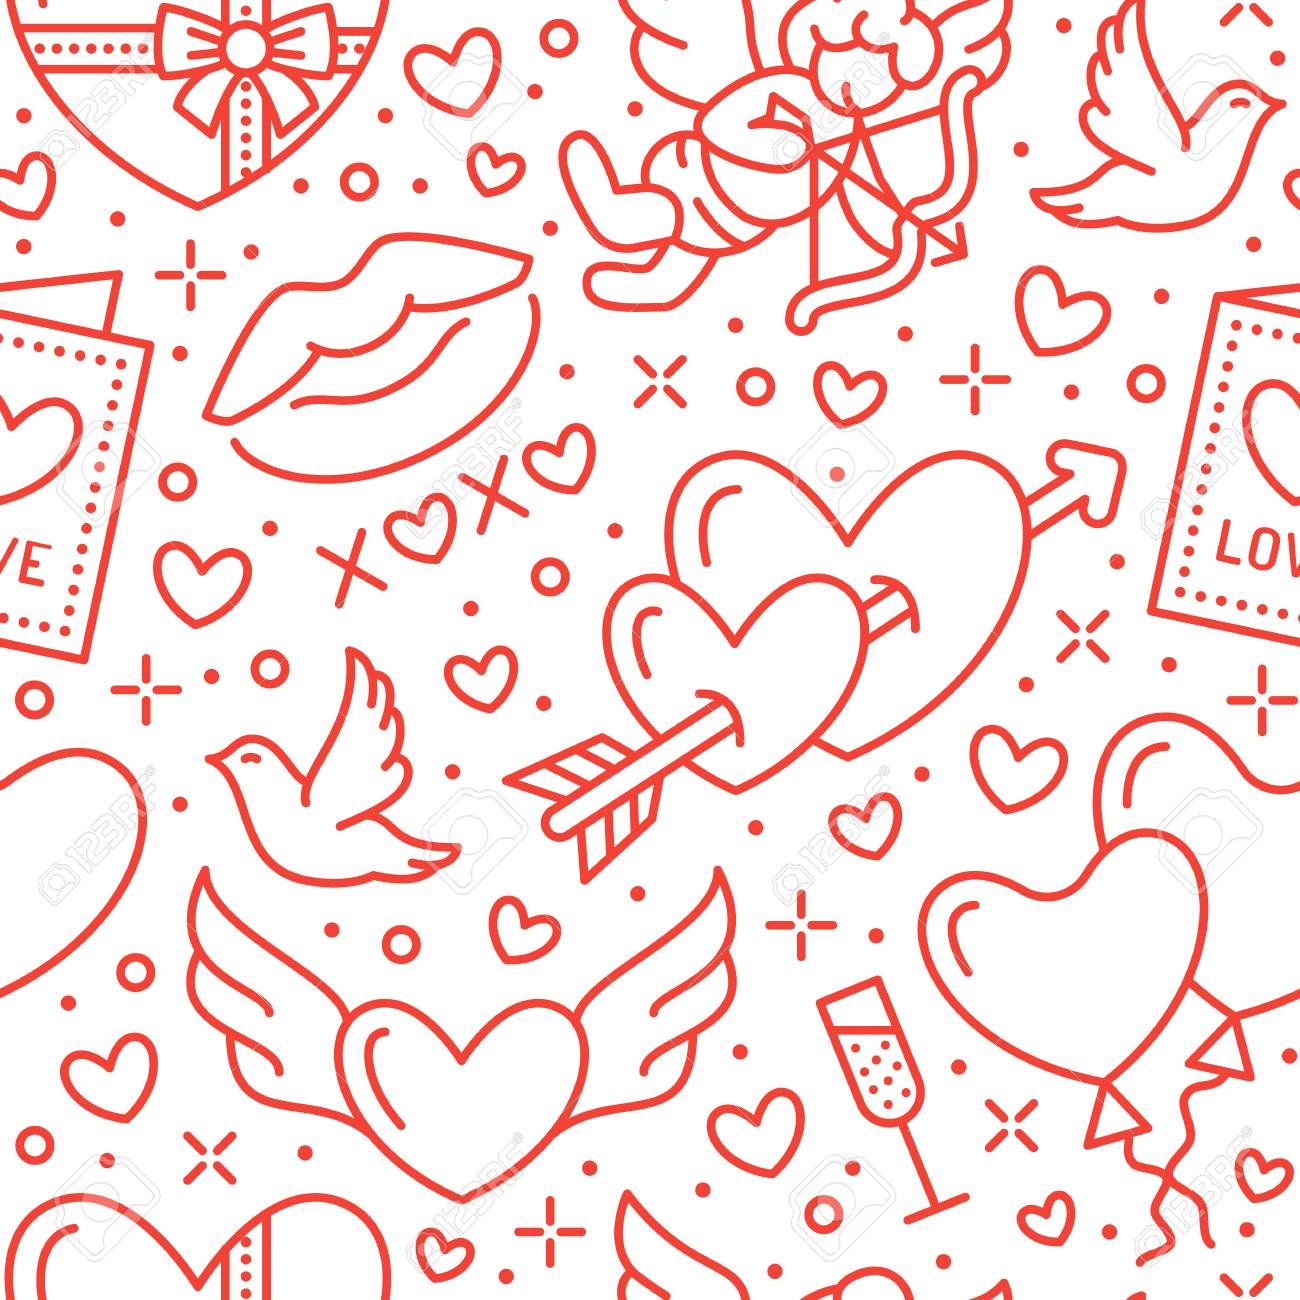 Valentines day seamless pattern. Love, romance flat line icons - hearts, chocolate, kiss, Cupid, doves, valentine card. Red white wallpaper for February 14 celebration. - 93453780